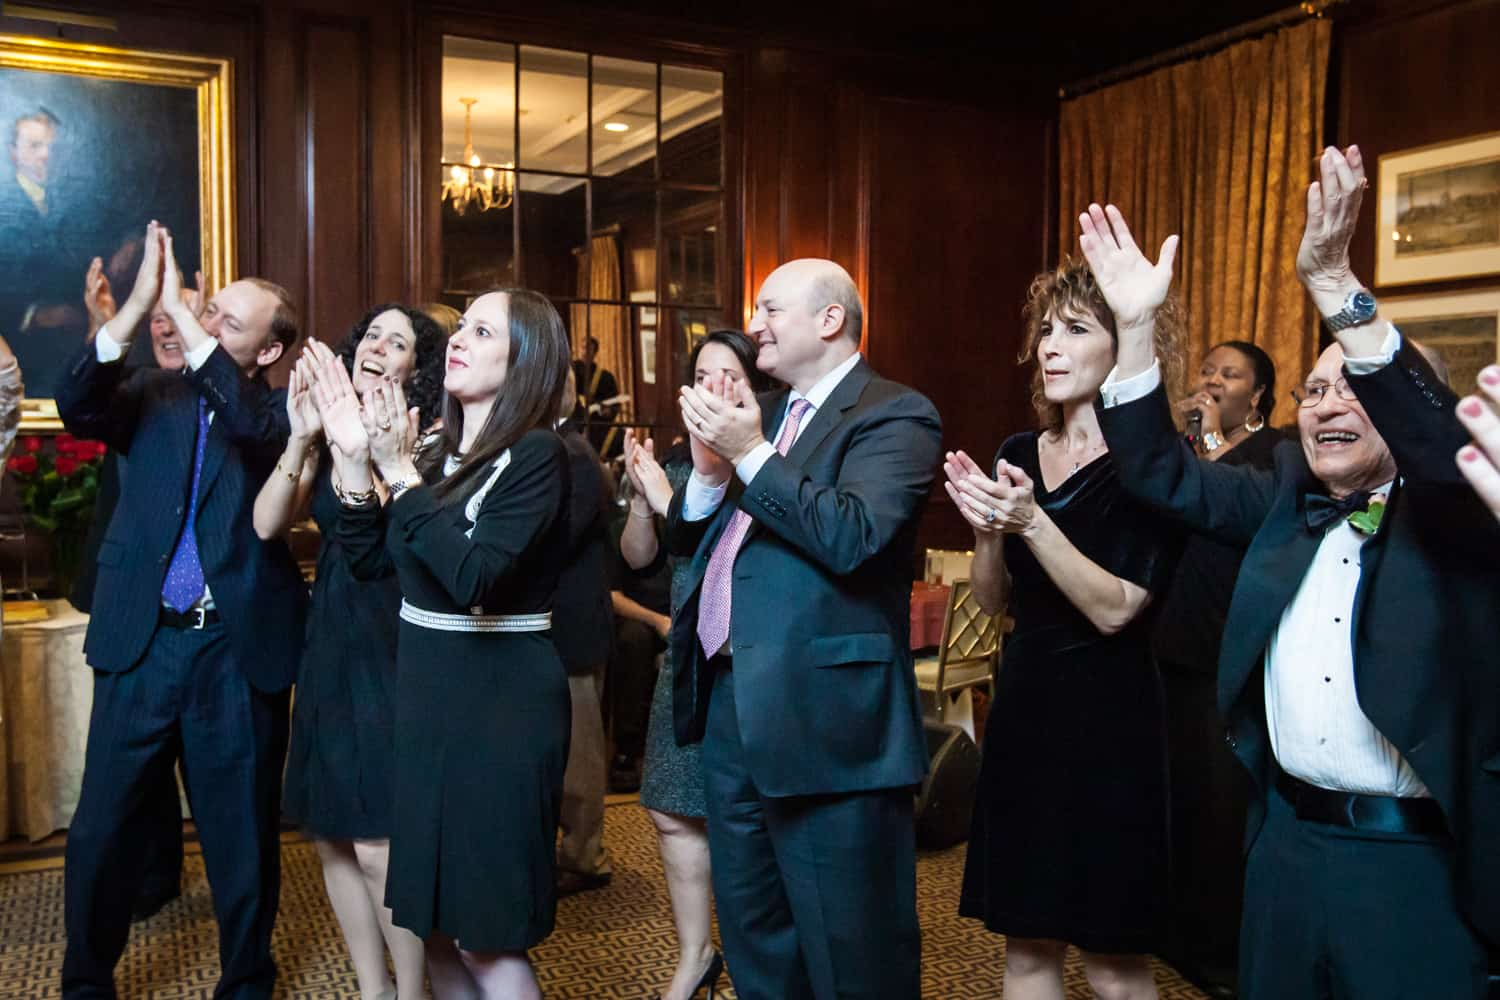 Guests clapping at Harvard Club wedding reception